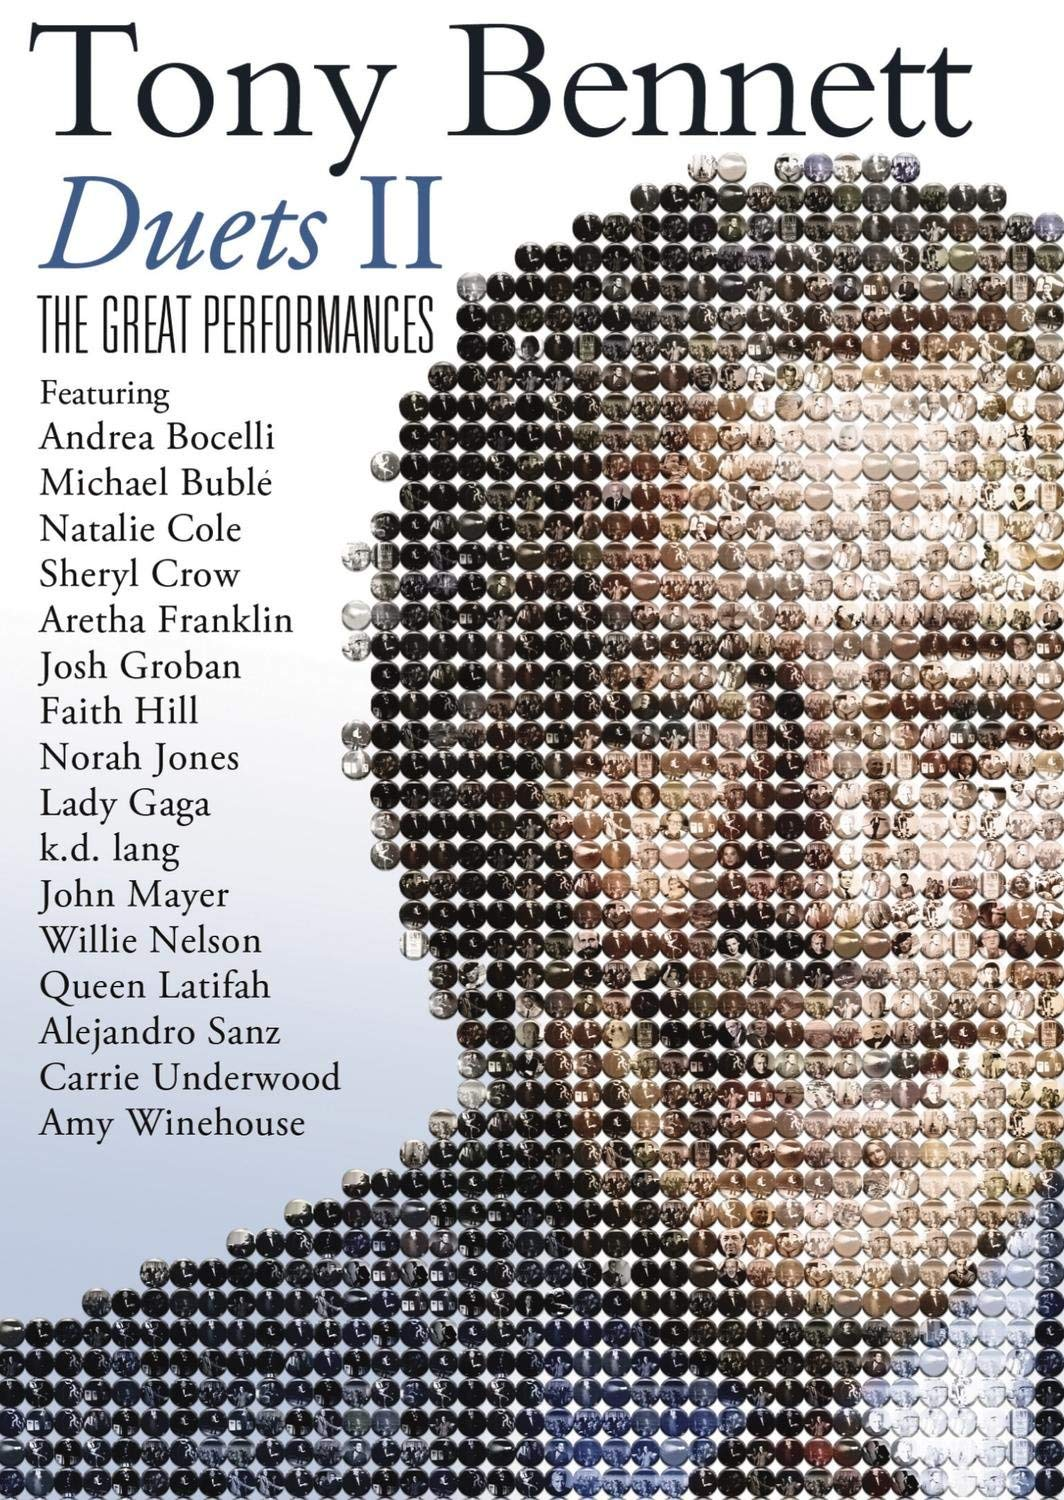 TONY BENNETT: DUETS II - THE GREAT PERFORMANCES (BLU-RAY)